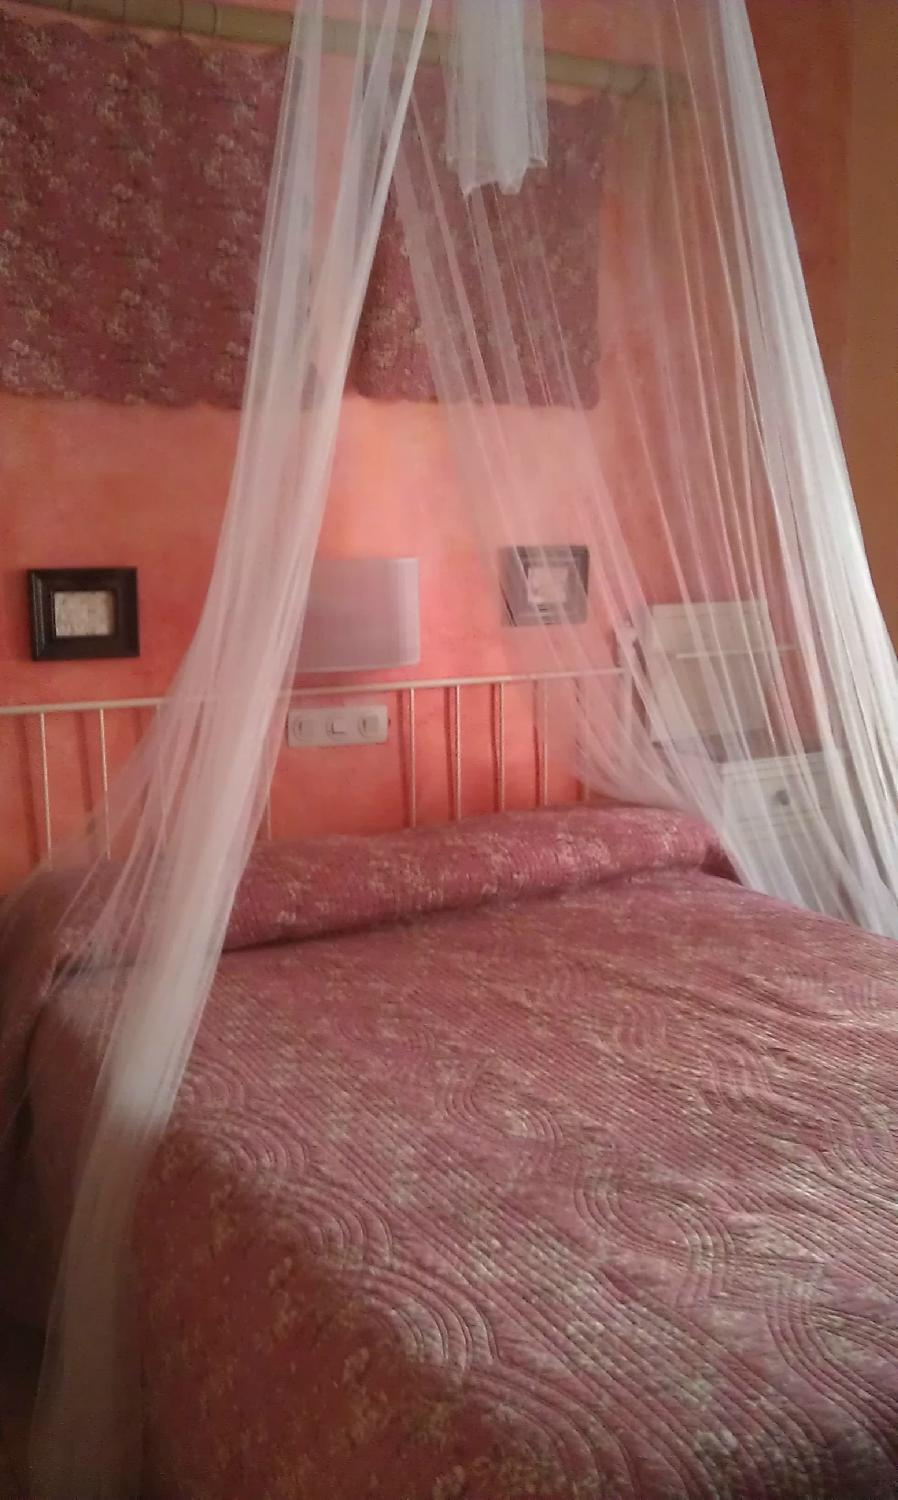 Ribes de Freser Spain  city pictures gallery : Hotel Prats Ribes de Freser, Spain UPDATED 2016 Reviews ...